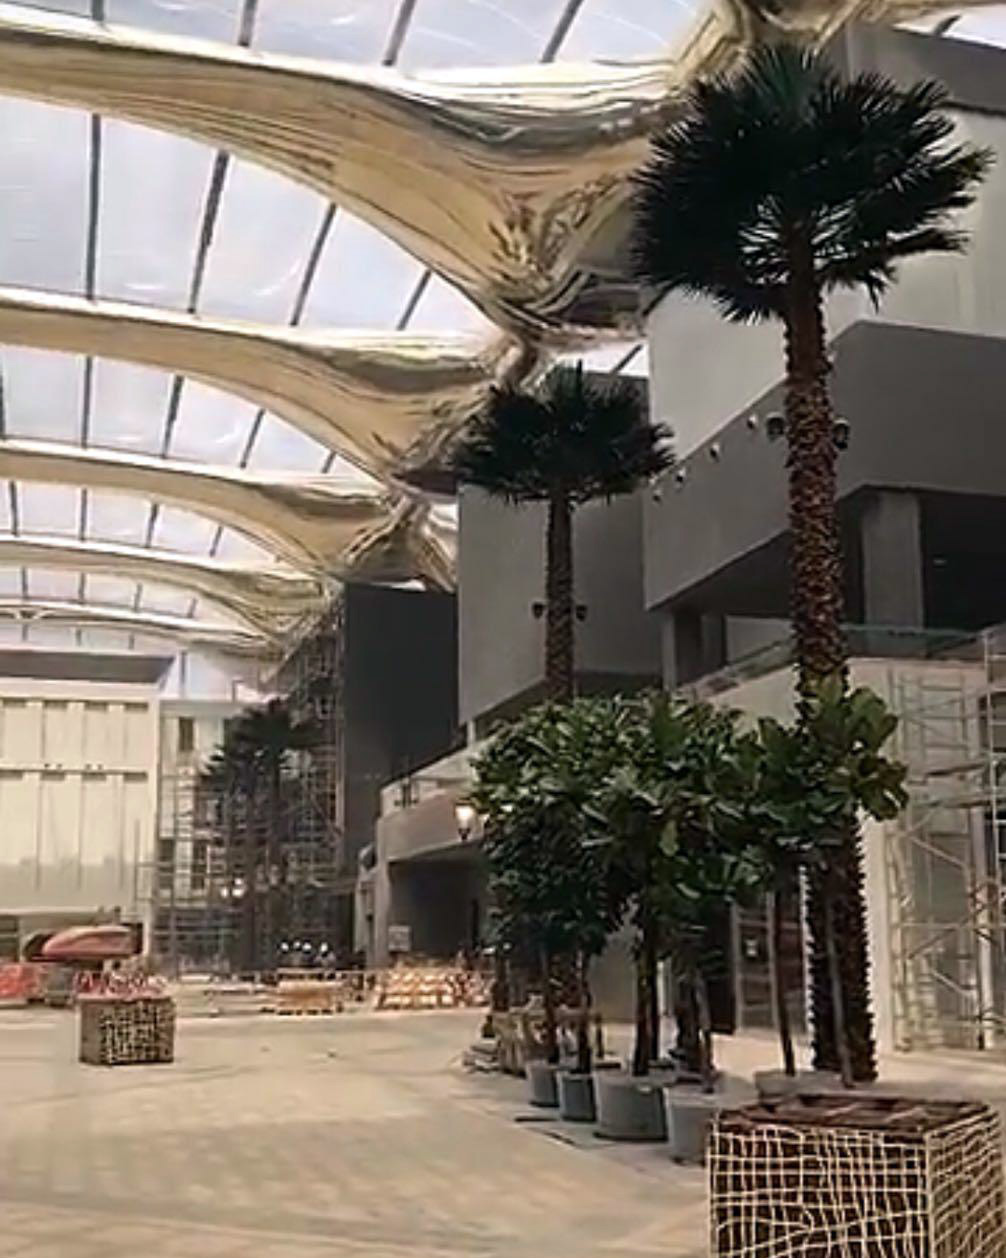 The Avenues Mall Kuwait Bfg Architecture